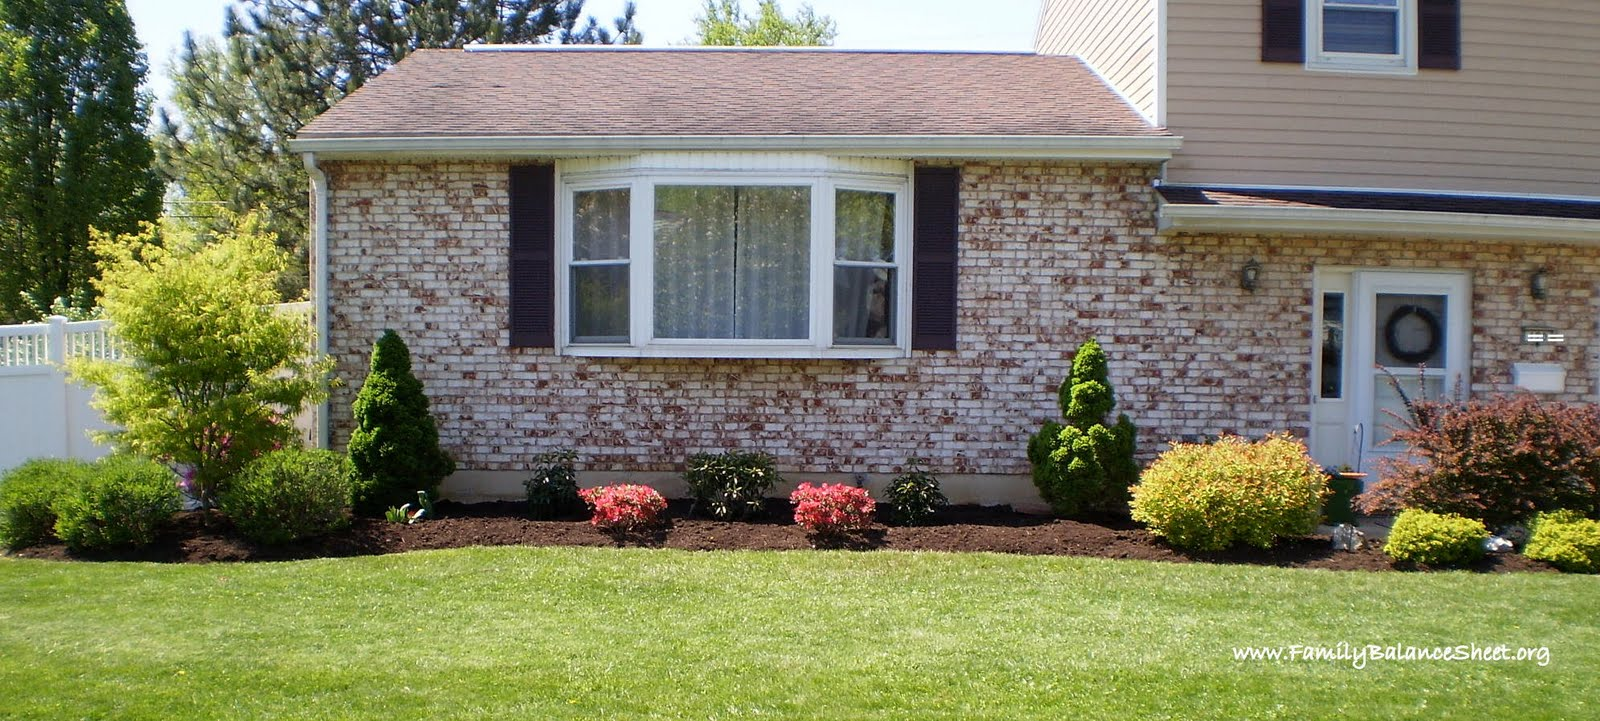 15 tips to help you design your front yard save money too for Home front landscaping